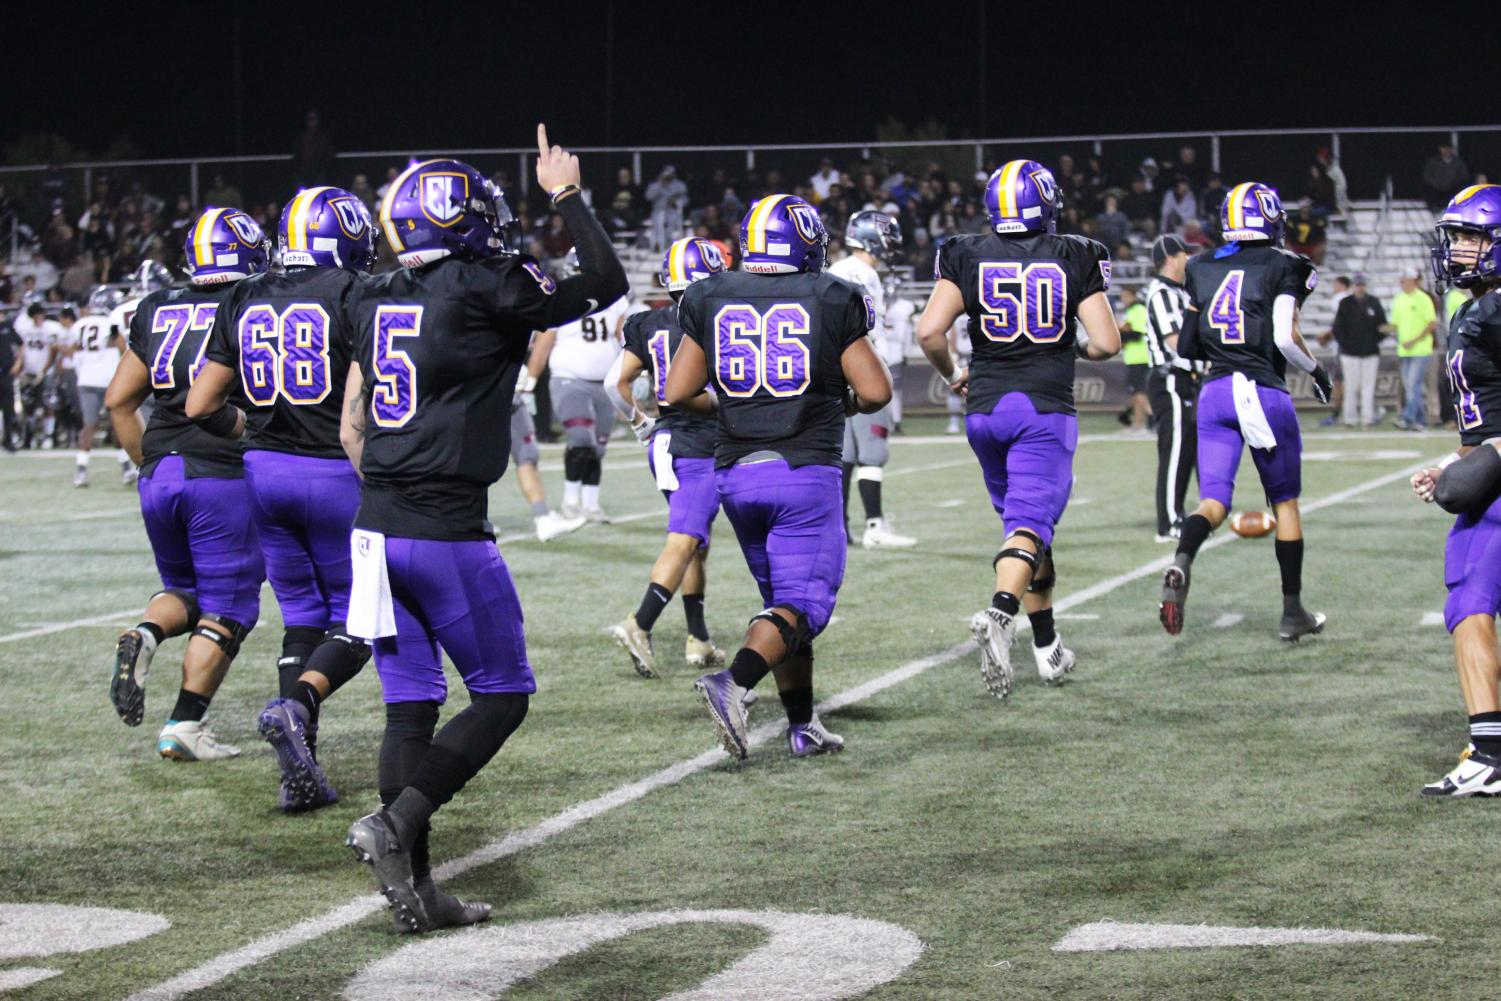 The Kingsmen offensive line runs on the field as senior quarterback Cesar De Leon points to the sky with only two games left in the season.